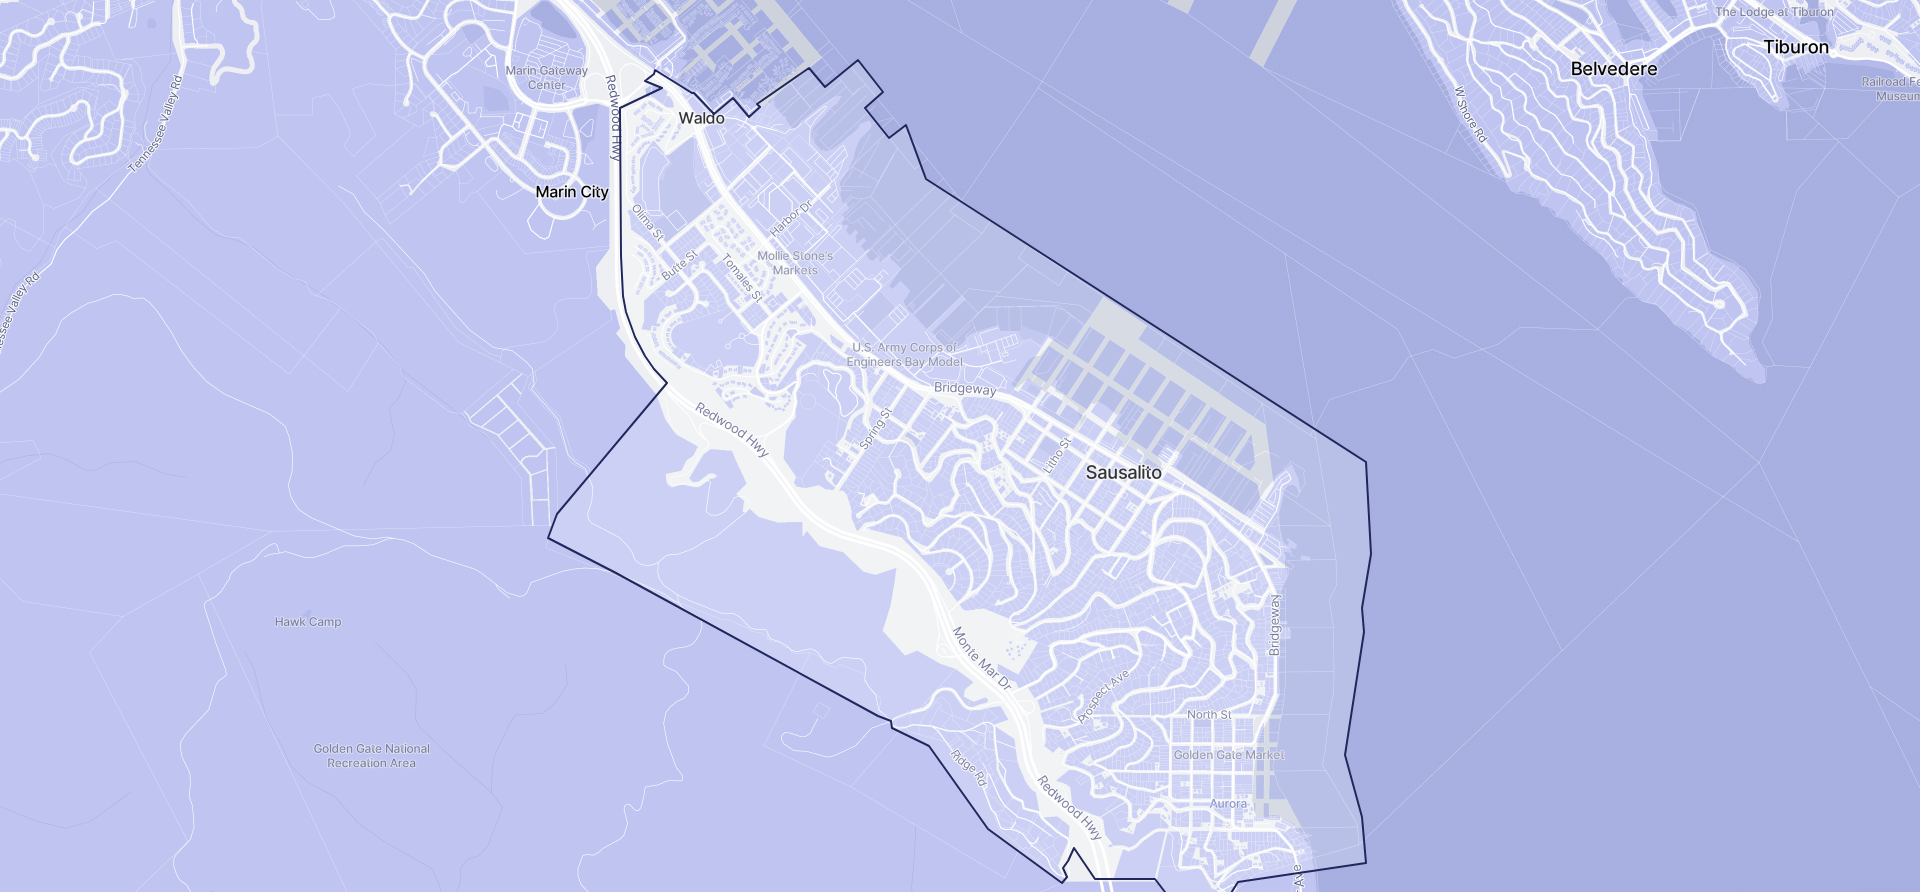 Image of Sausalito boundaries on a map.